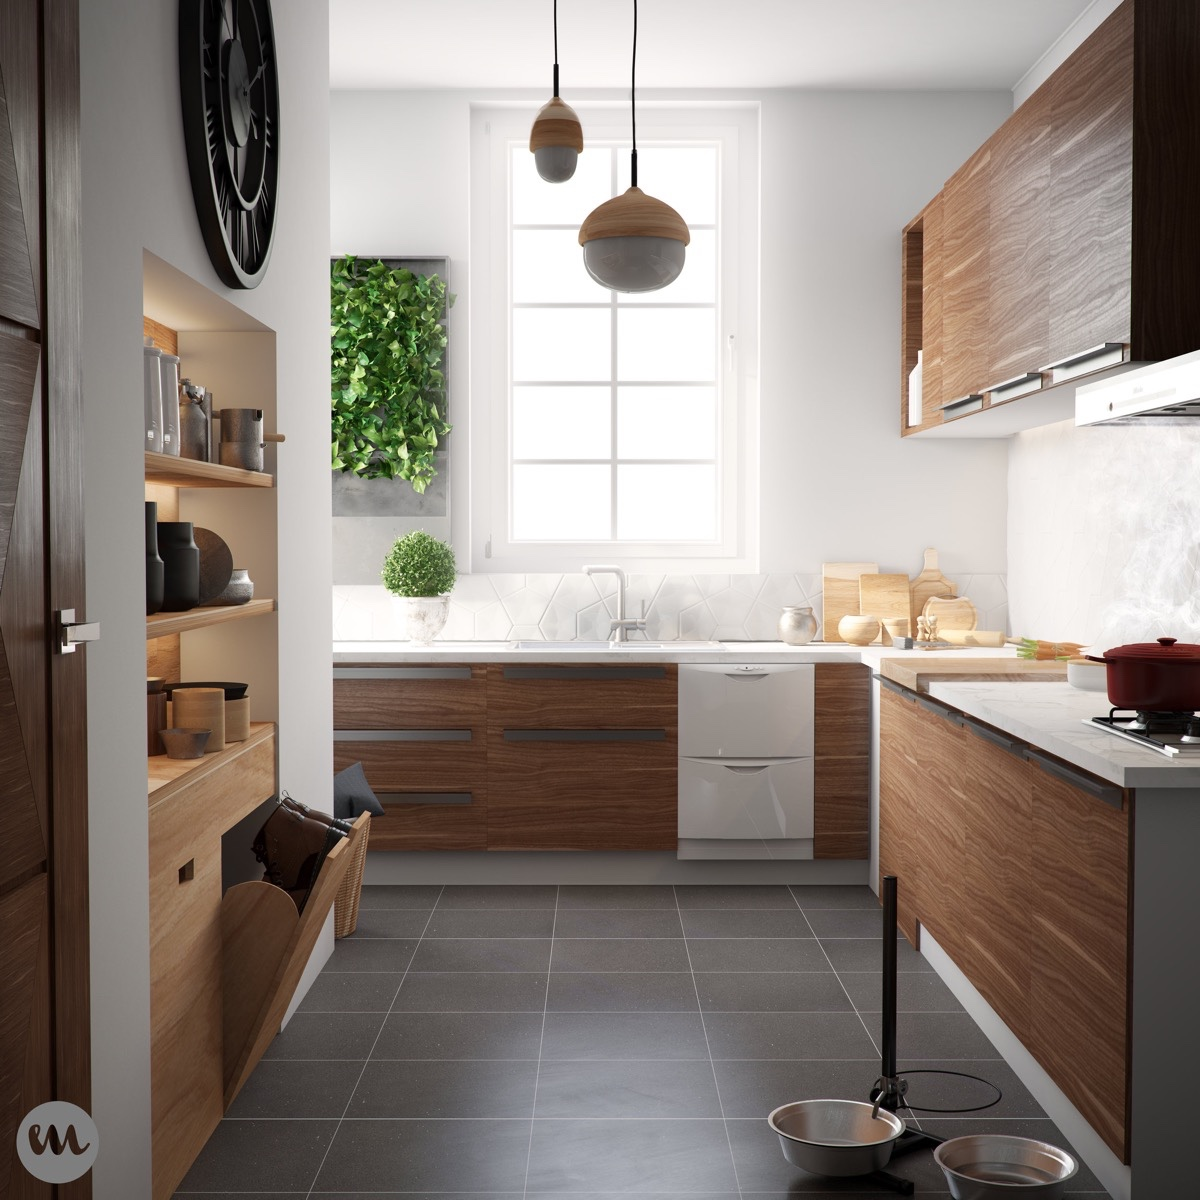 Scandinavian Kitchens: Ideas & Inspiration